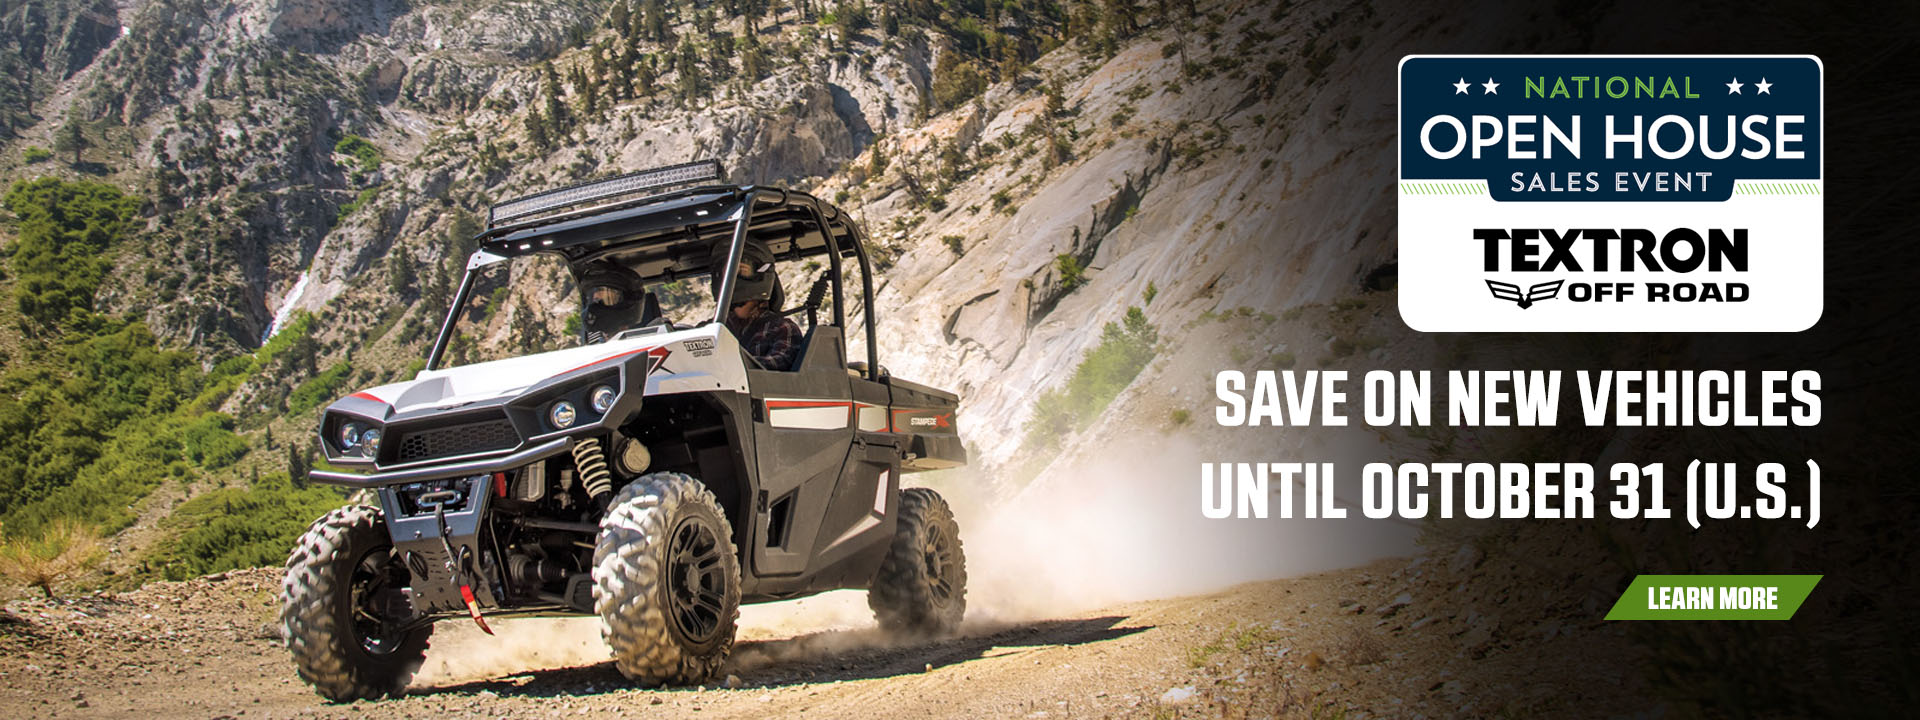 Textron Off Road: National Open House Sales Event